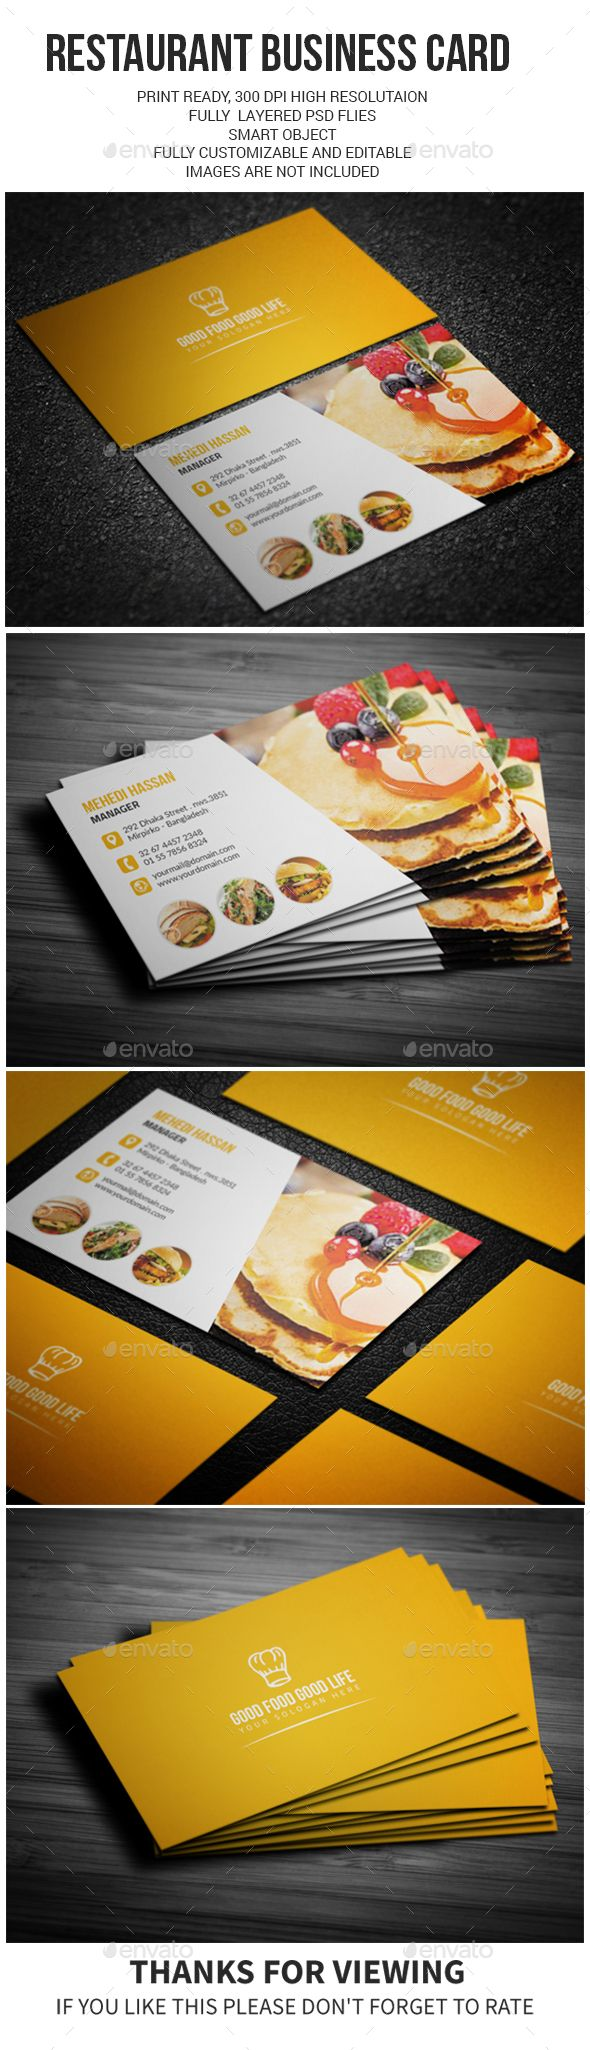 1215 best tarjetas de presentacin images on pinterest visual restaurant business card magicingreecefo Image collections